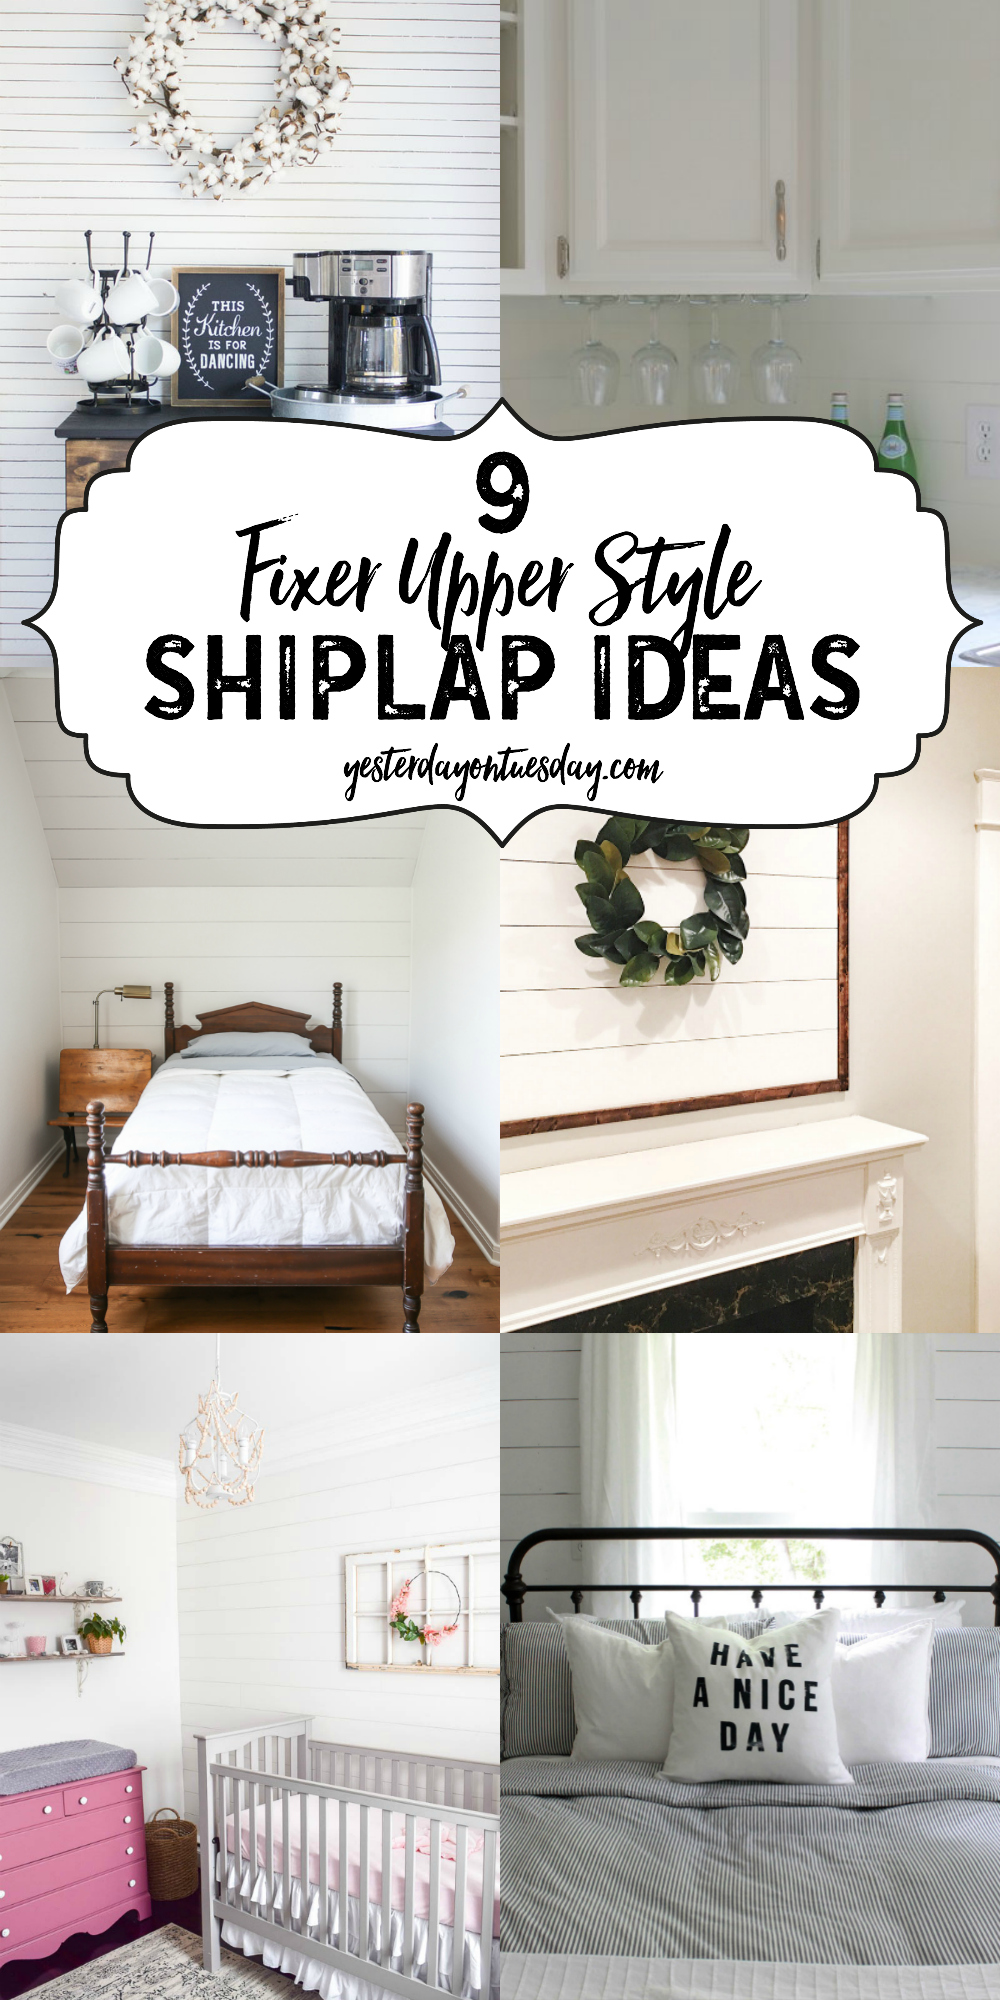 9 Fixer Upper Style Shiplap Ideas for the kitchen, kid's rooms, bedroom, entry, living too and more!